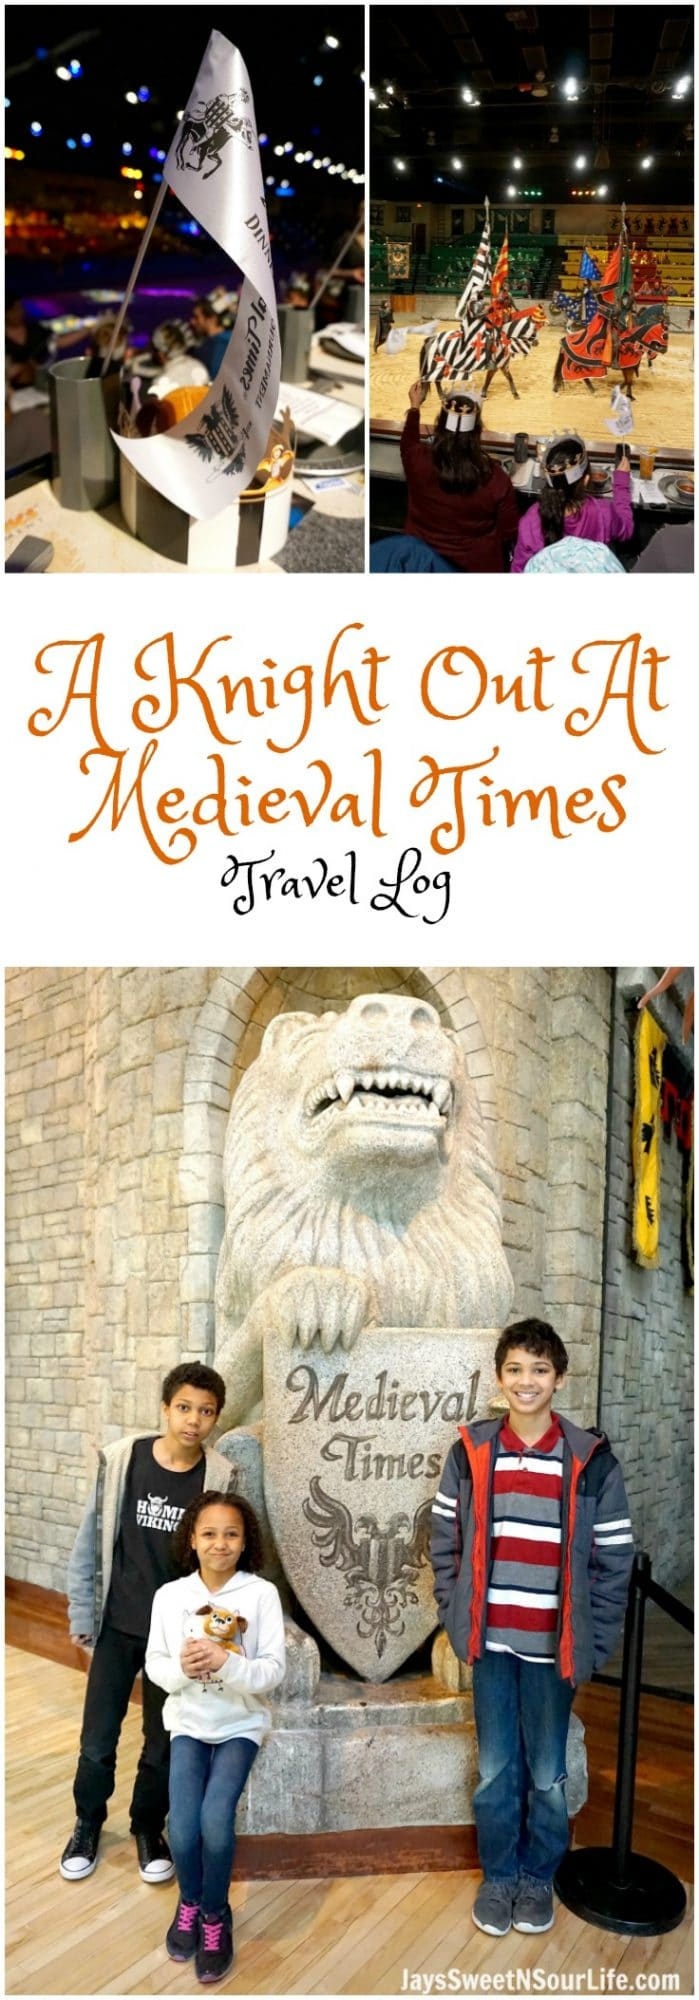 Experience Medieval Times dinner and show - chivalry, rivalry & revelry! Knights, horses, falconry, jousting, the color & action of medieval Spain. Celebrate Your Birthday Free! Sign up for email updates with special offers, birthday surprises & more! Myrtle Beach, SC ; Chicago, IL.